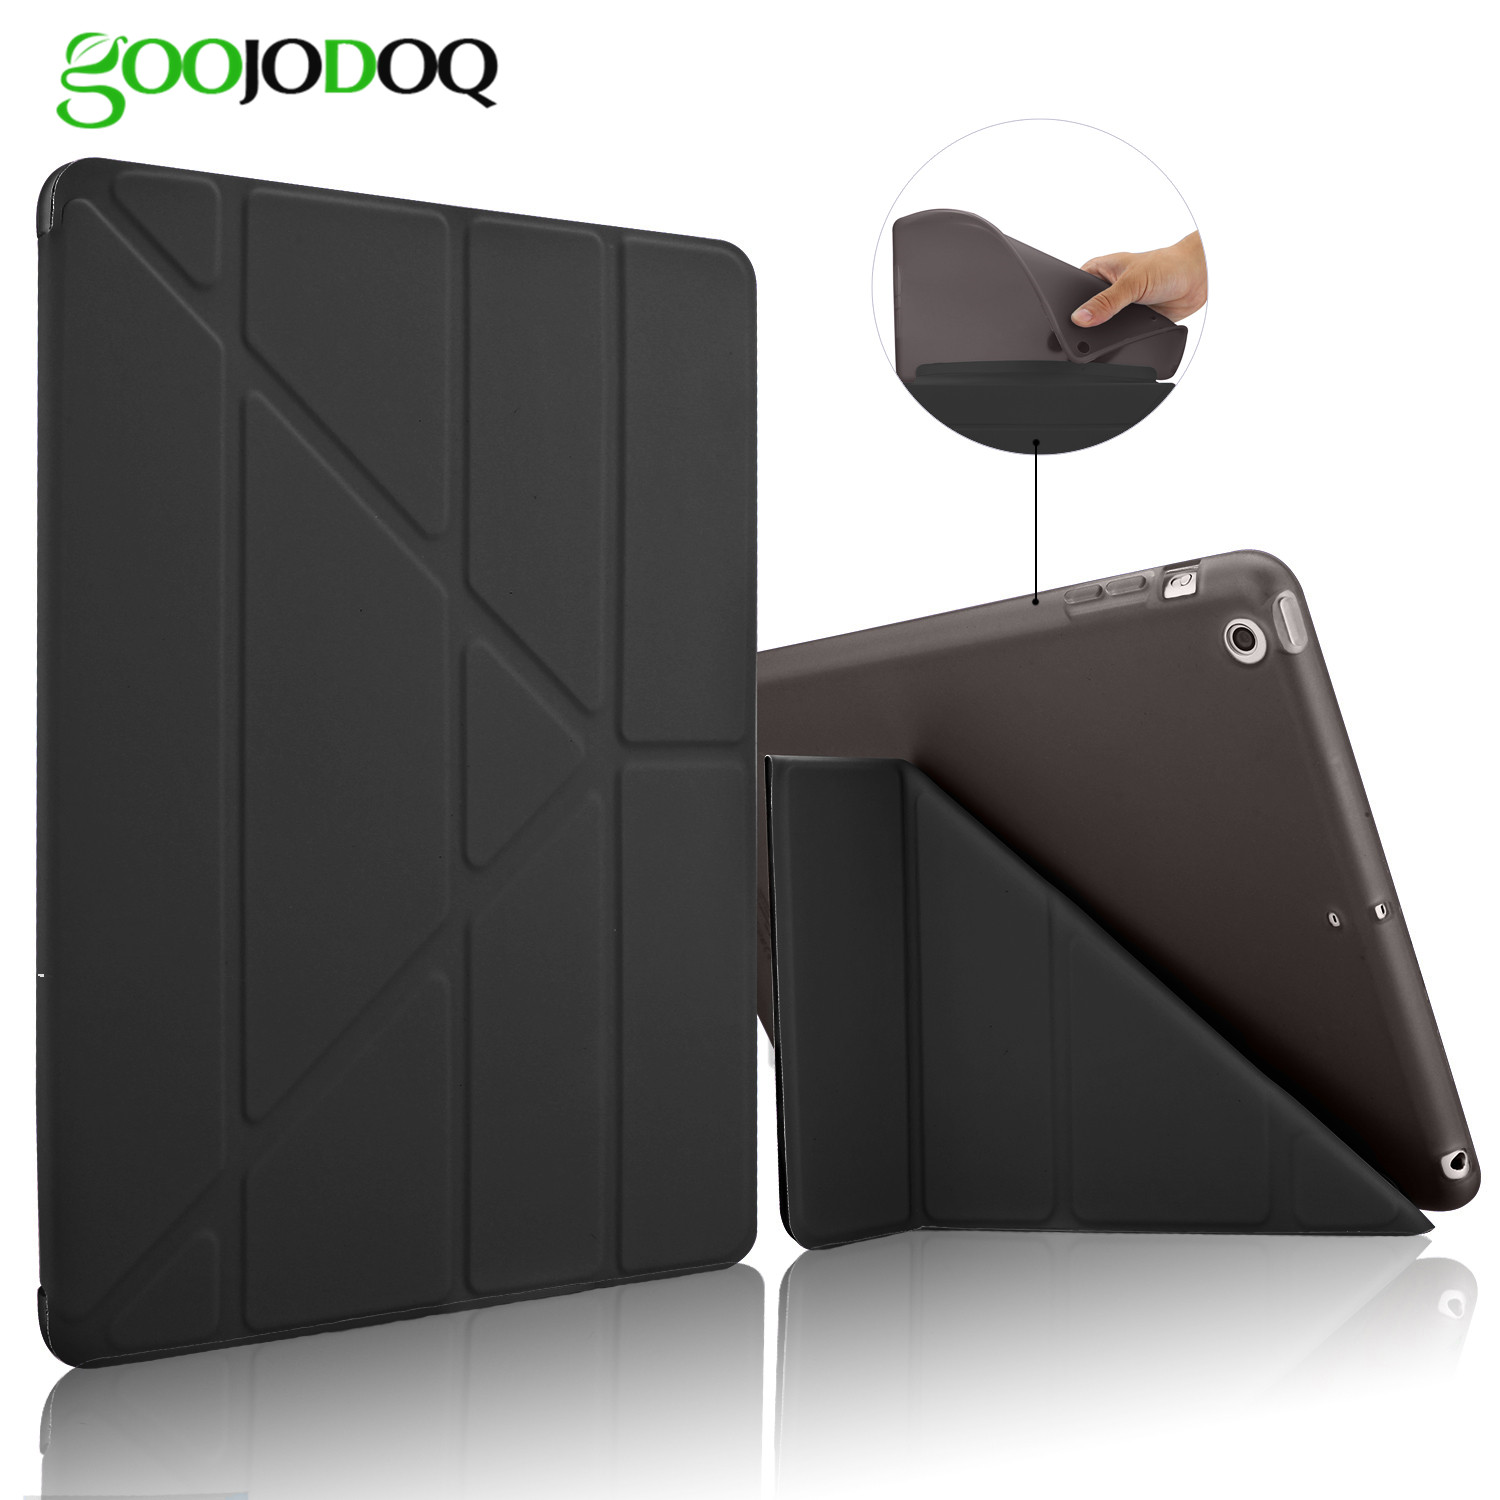 Case For Ipad Air 2/Air 1 Five Shapes Ultra Thin PU Leather Flip Stand TPU Soft Back Cover For iPad 5/6 Auto Sleep/Wake  A4243 for ipad air 2 air 1 case slim pu leather silicone soft back smart cover sturdy stand auto sleep for apple ipad air 5 6 coque